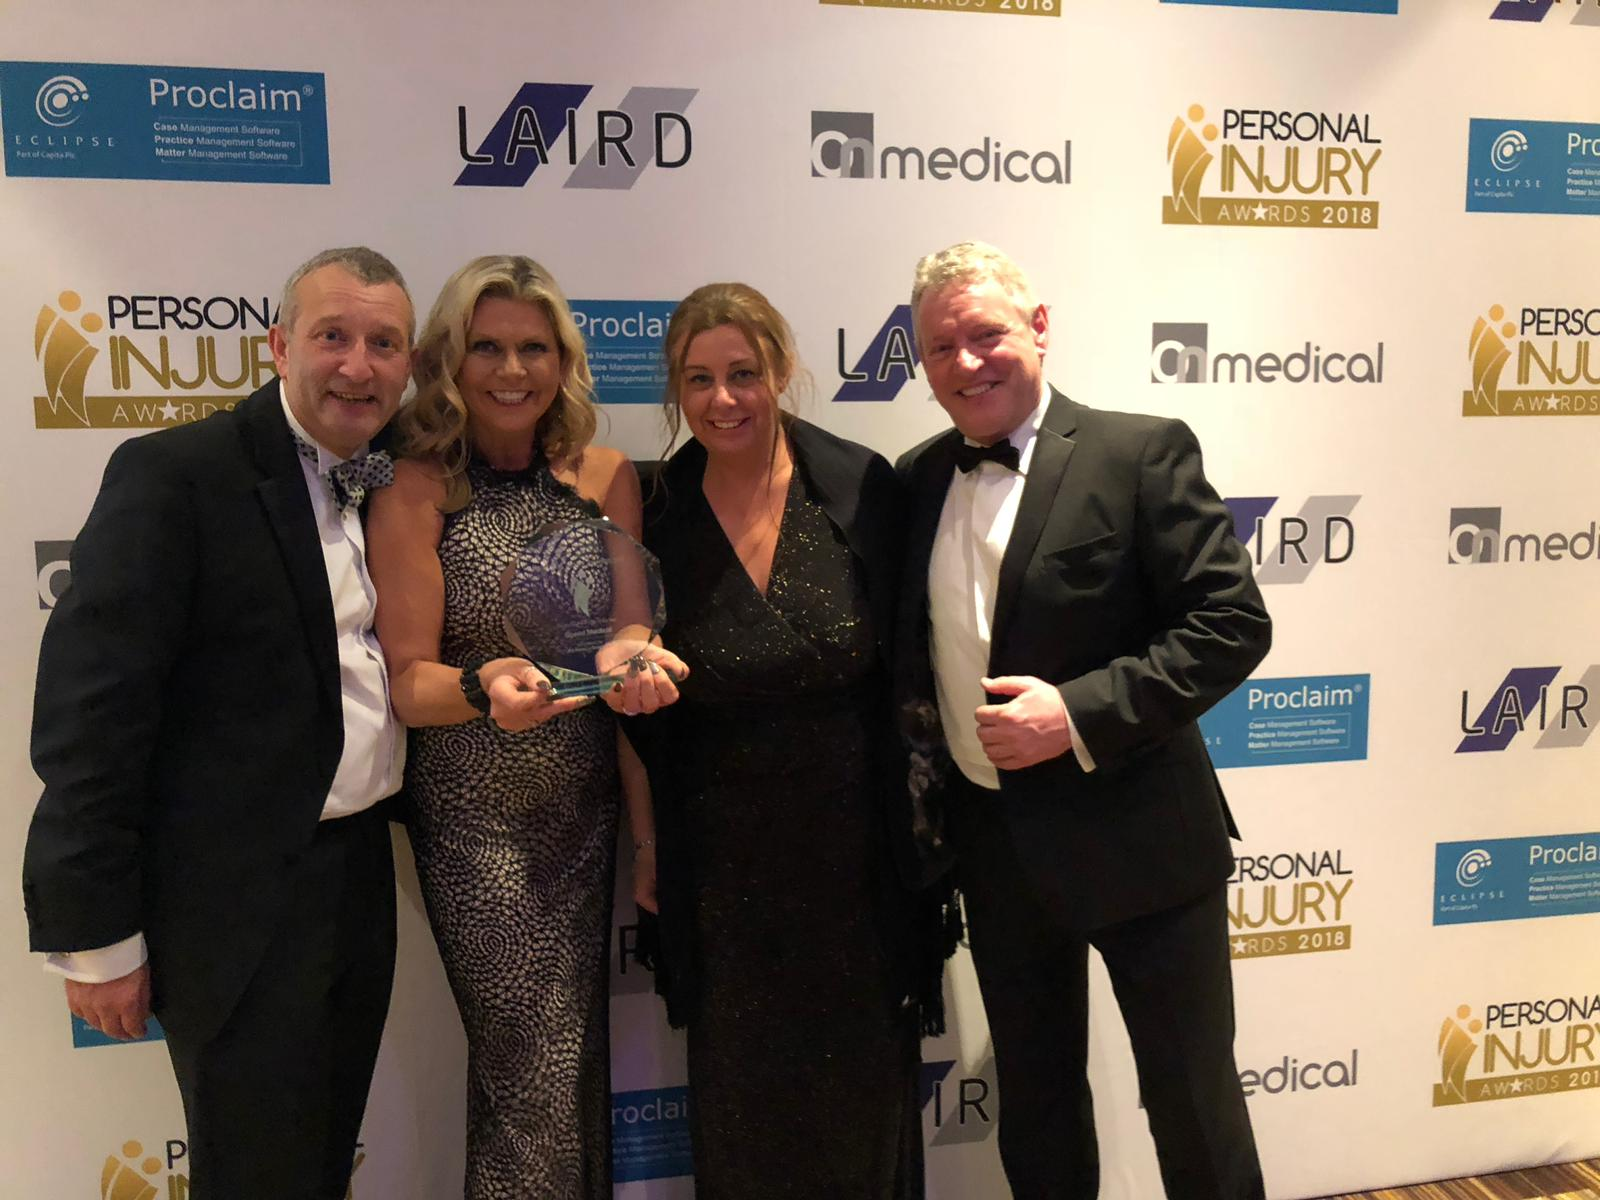 Speed Medical WINS Medicolegal Provider of the Year 2018!